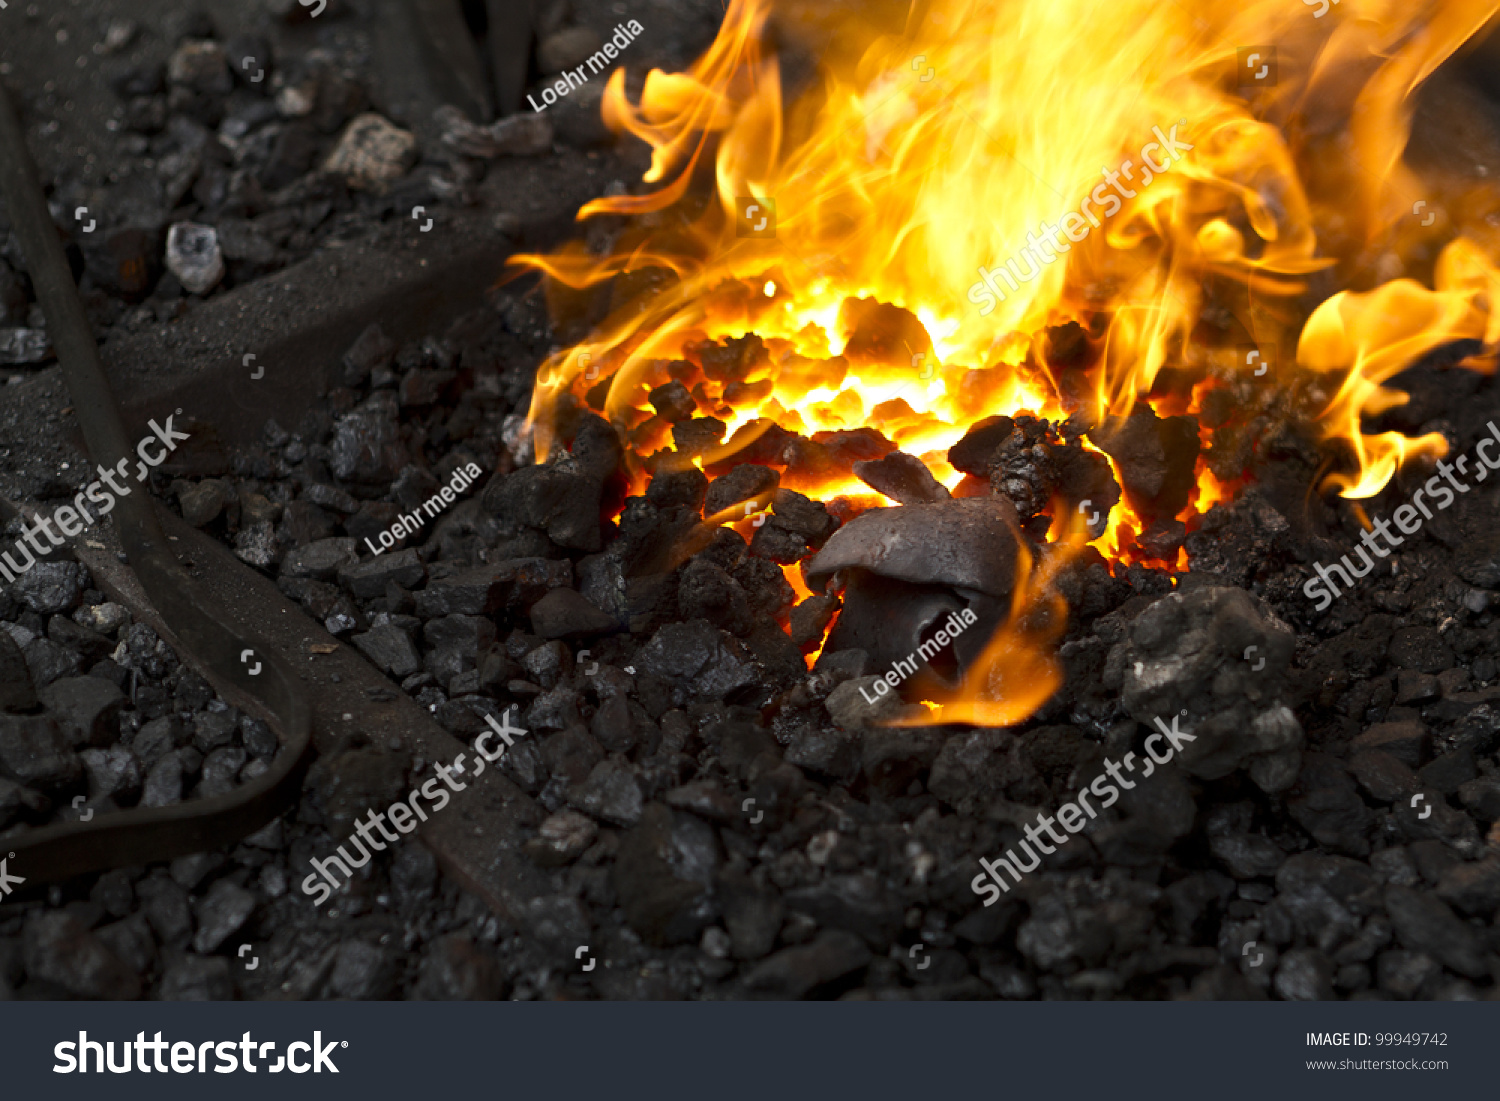 close up of a blacksmith shop fire stock photo 99949742 shutterstock. Black Bedroom Furniture Sets. Home Design Ideas